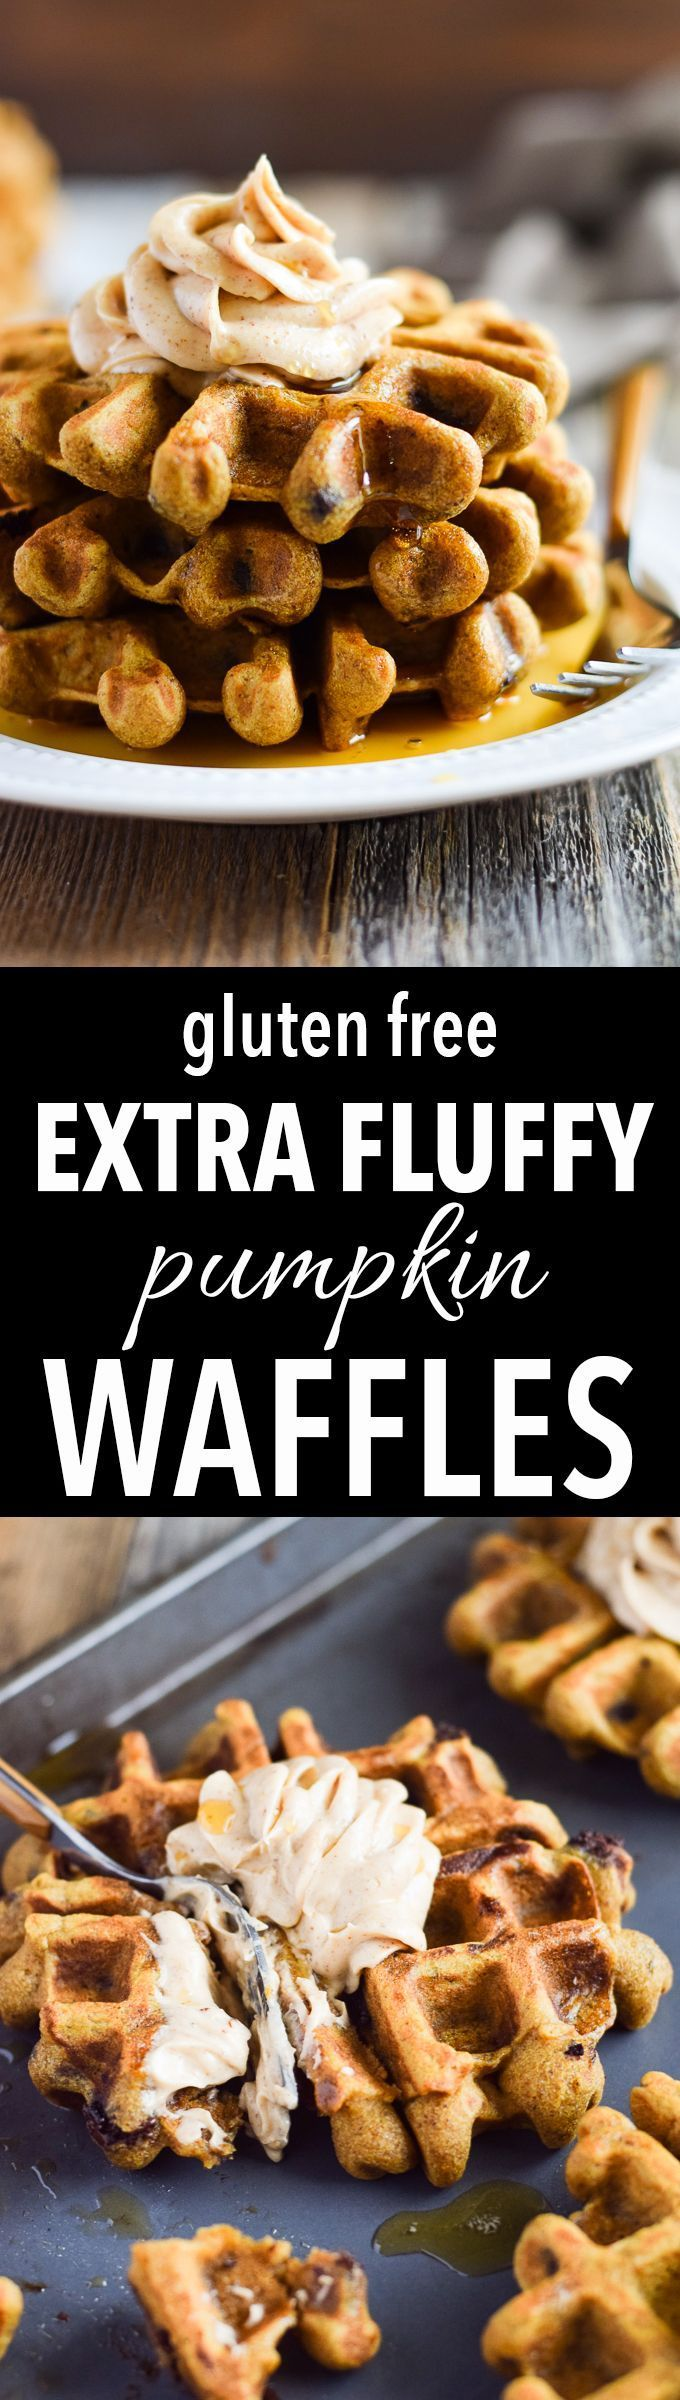 Light & fluffy gluten free pumpkin waffles! Made with cassava flour, honey and chocolate chips. Dairy free, nut free and paleo.